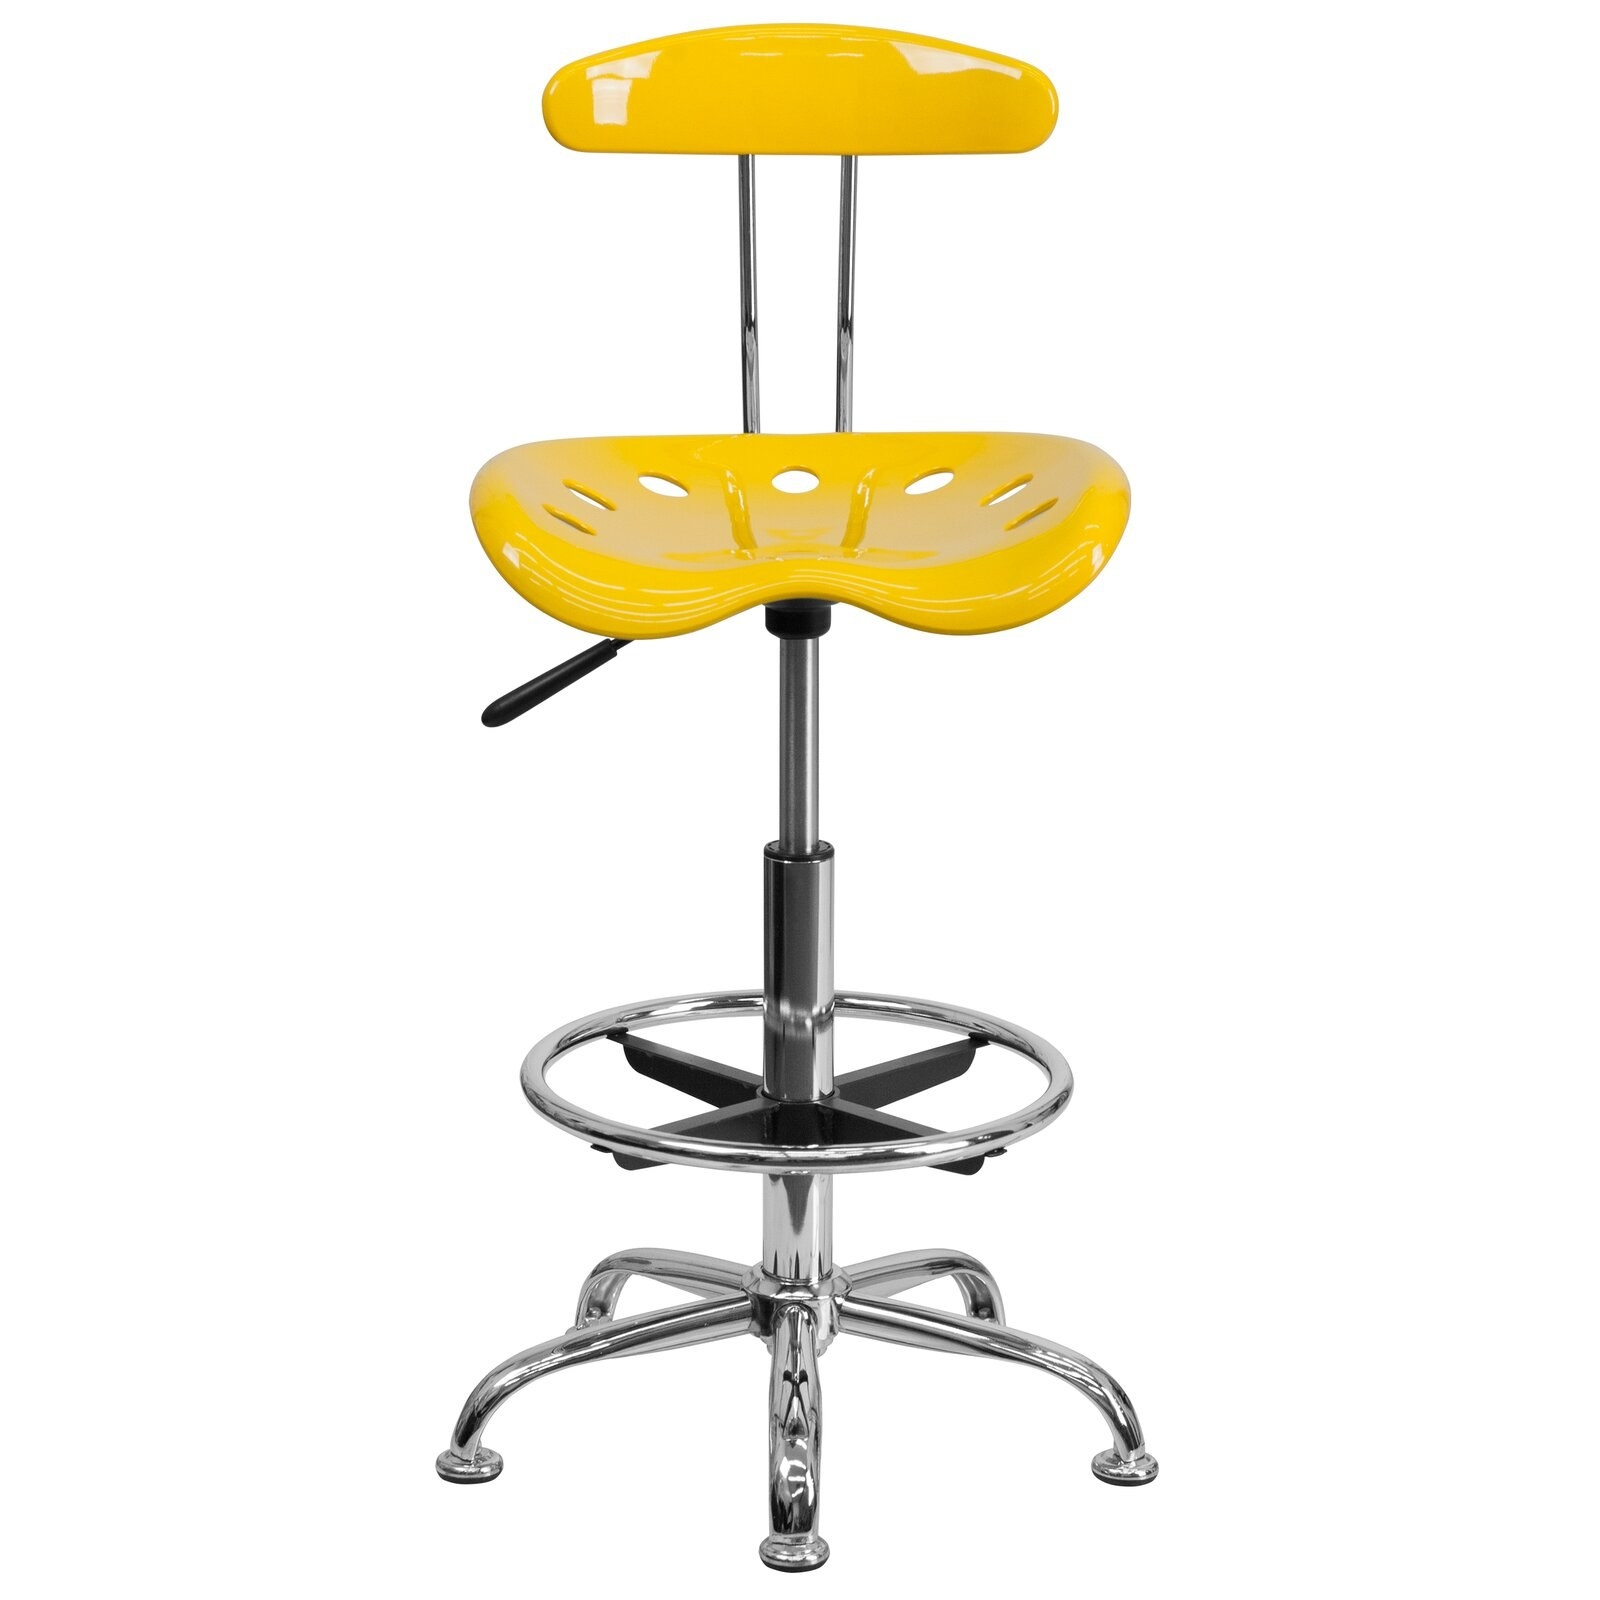 Lila drafting chair in yellow with full 360-degree swivel function and foot rest